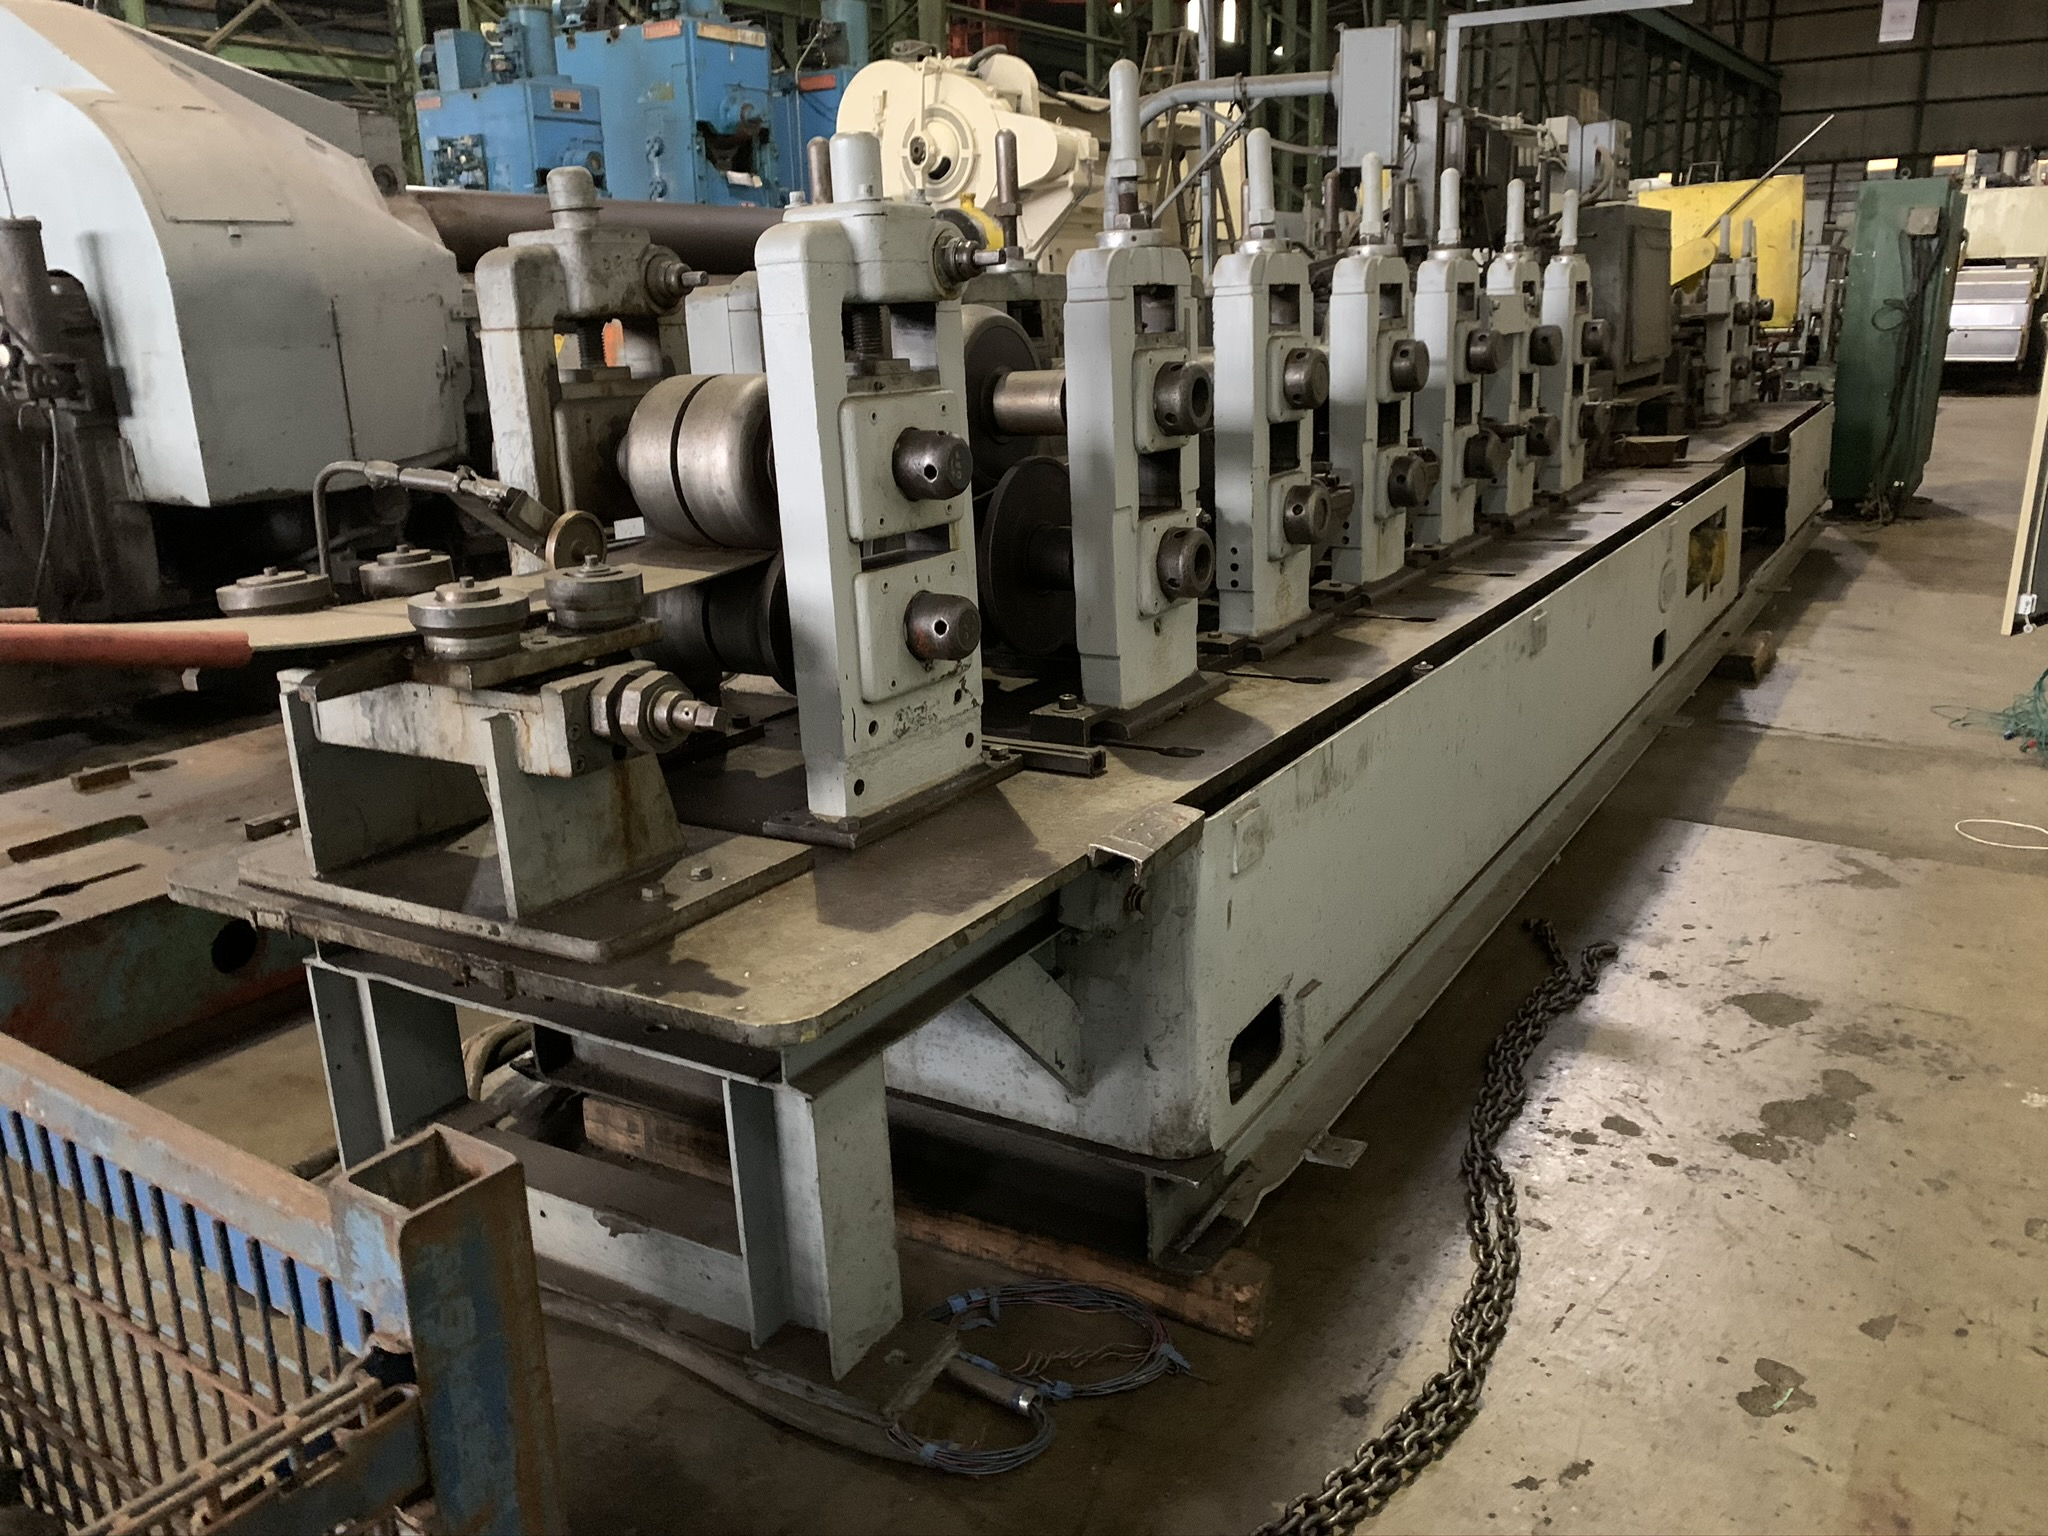 YODER MODEL M3 TUBE MILL; S/N 39774 68259-1, 9-STAND 7-DRIVEN FORMING STANDS, (2) SIZING STANDS, - Image 5 of 9